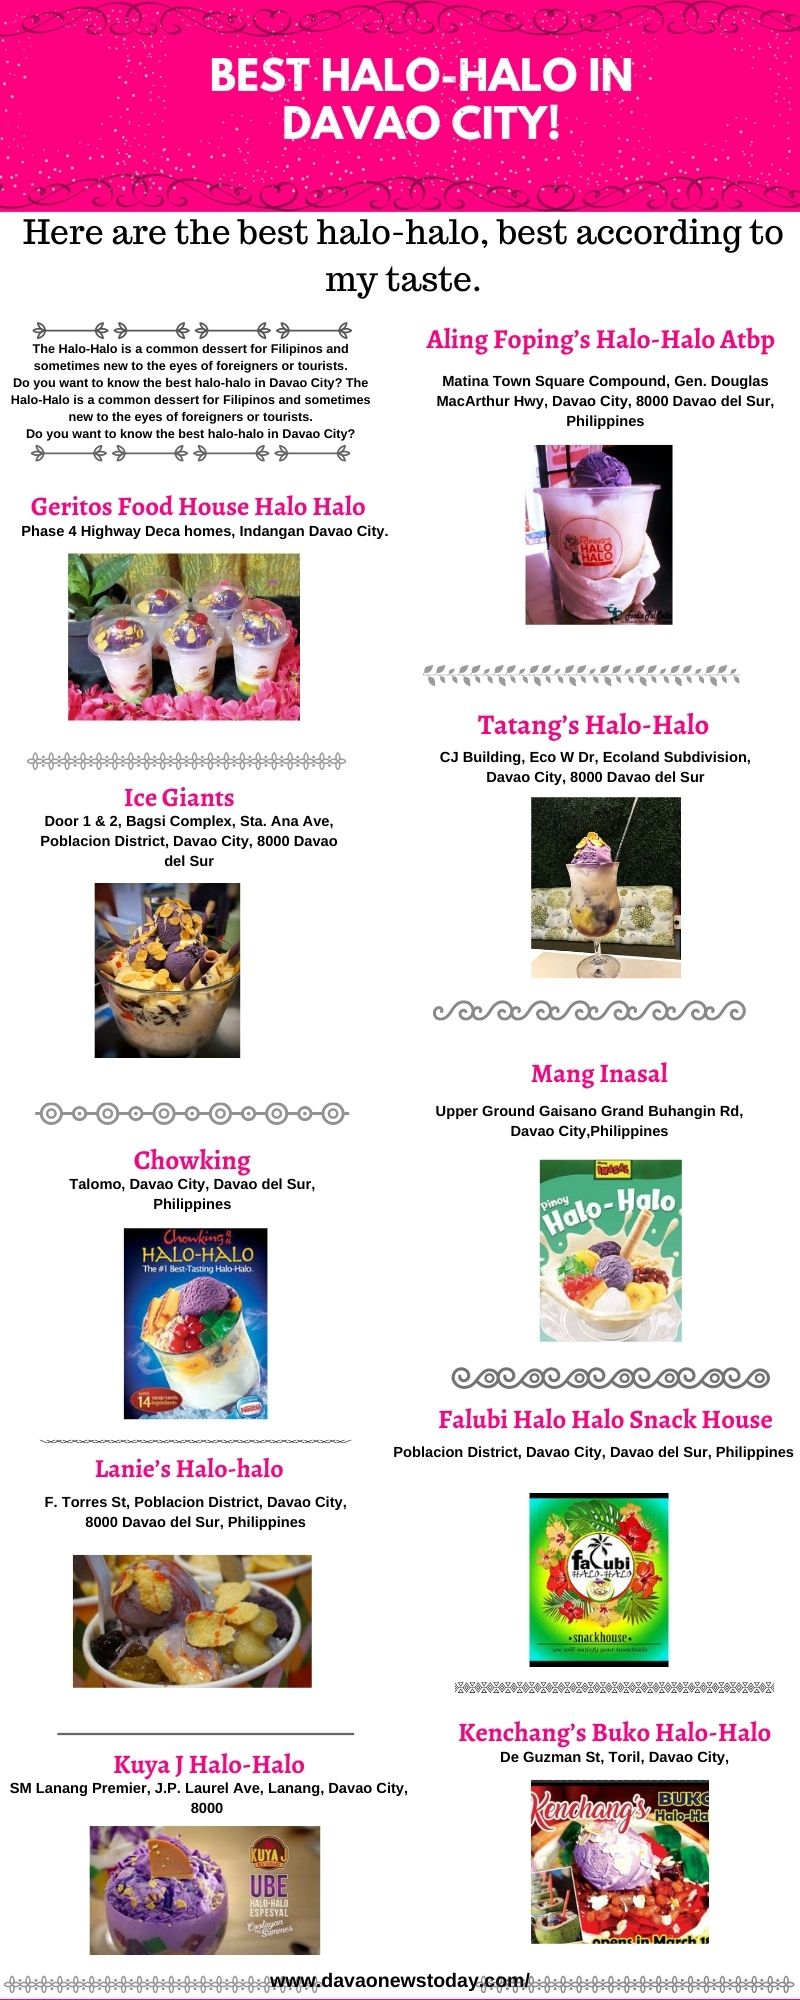 Top 10 Best Halo Halo in Davao City 2